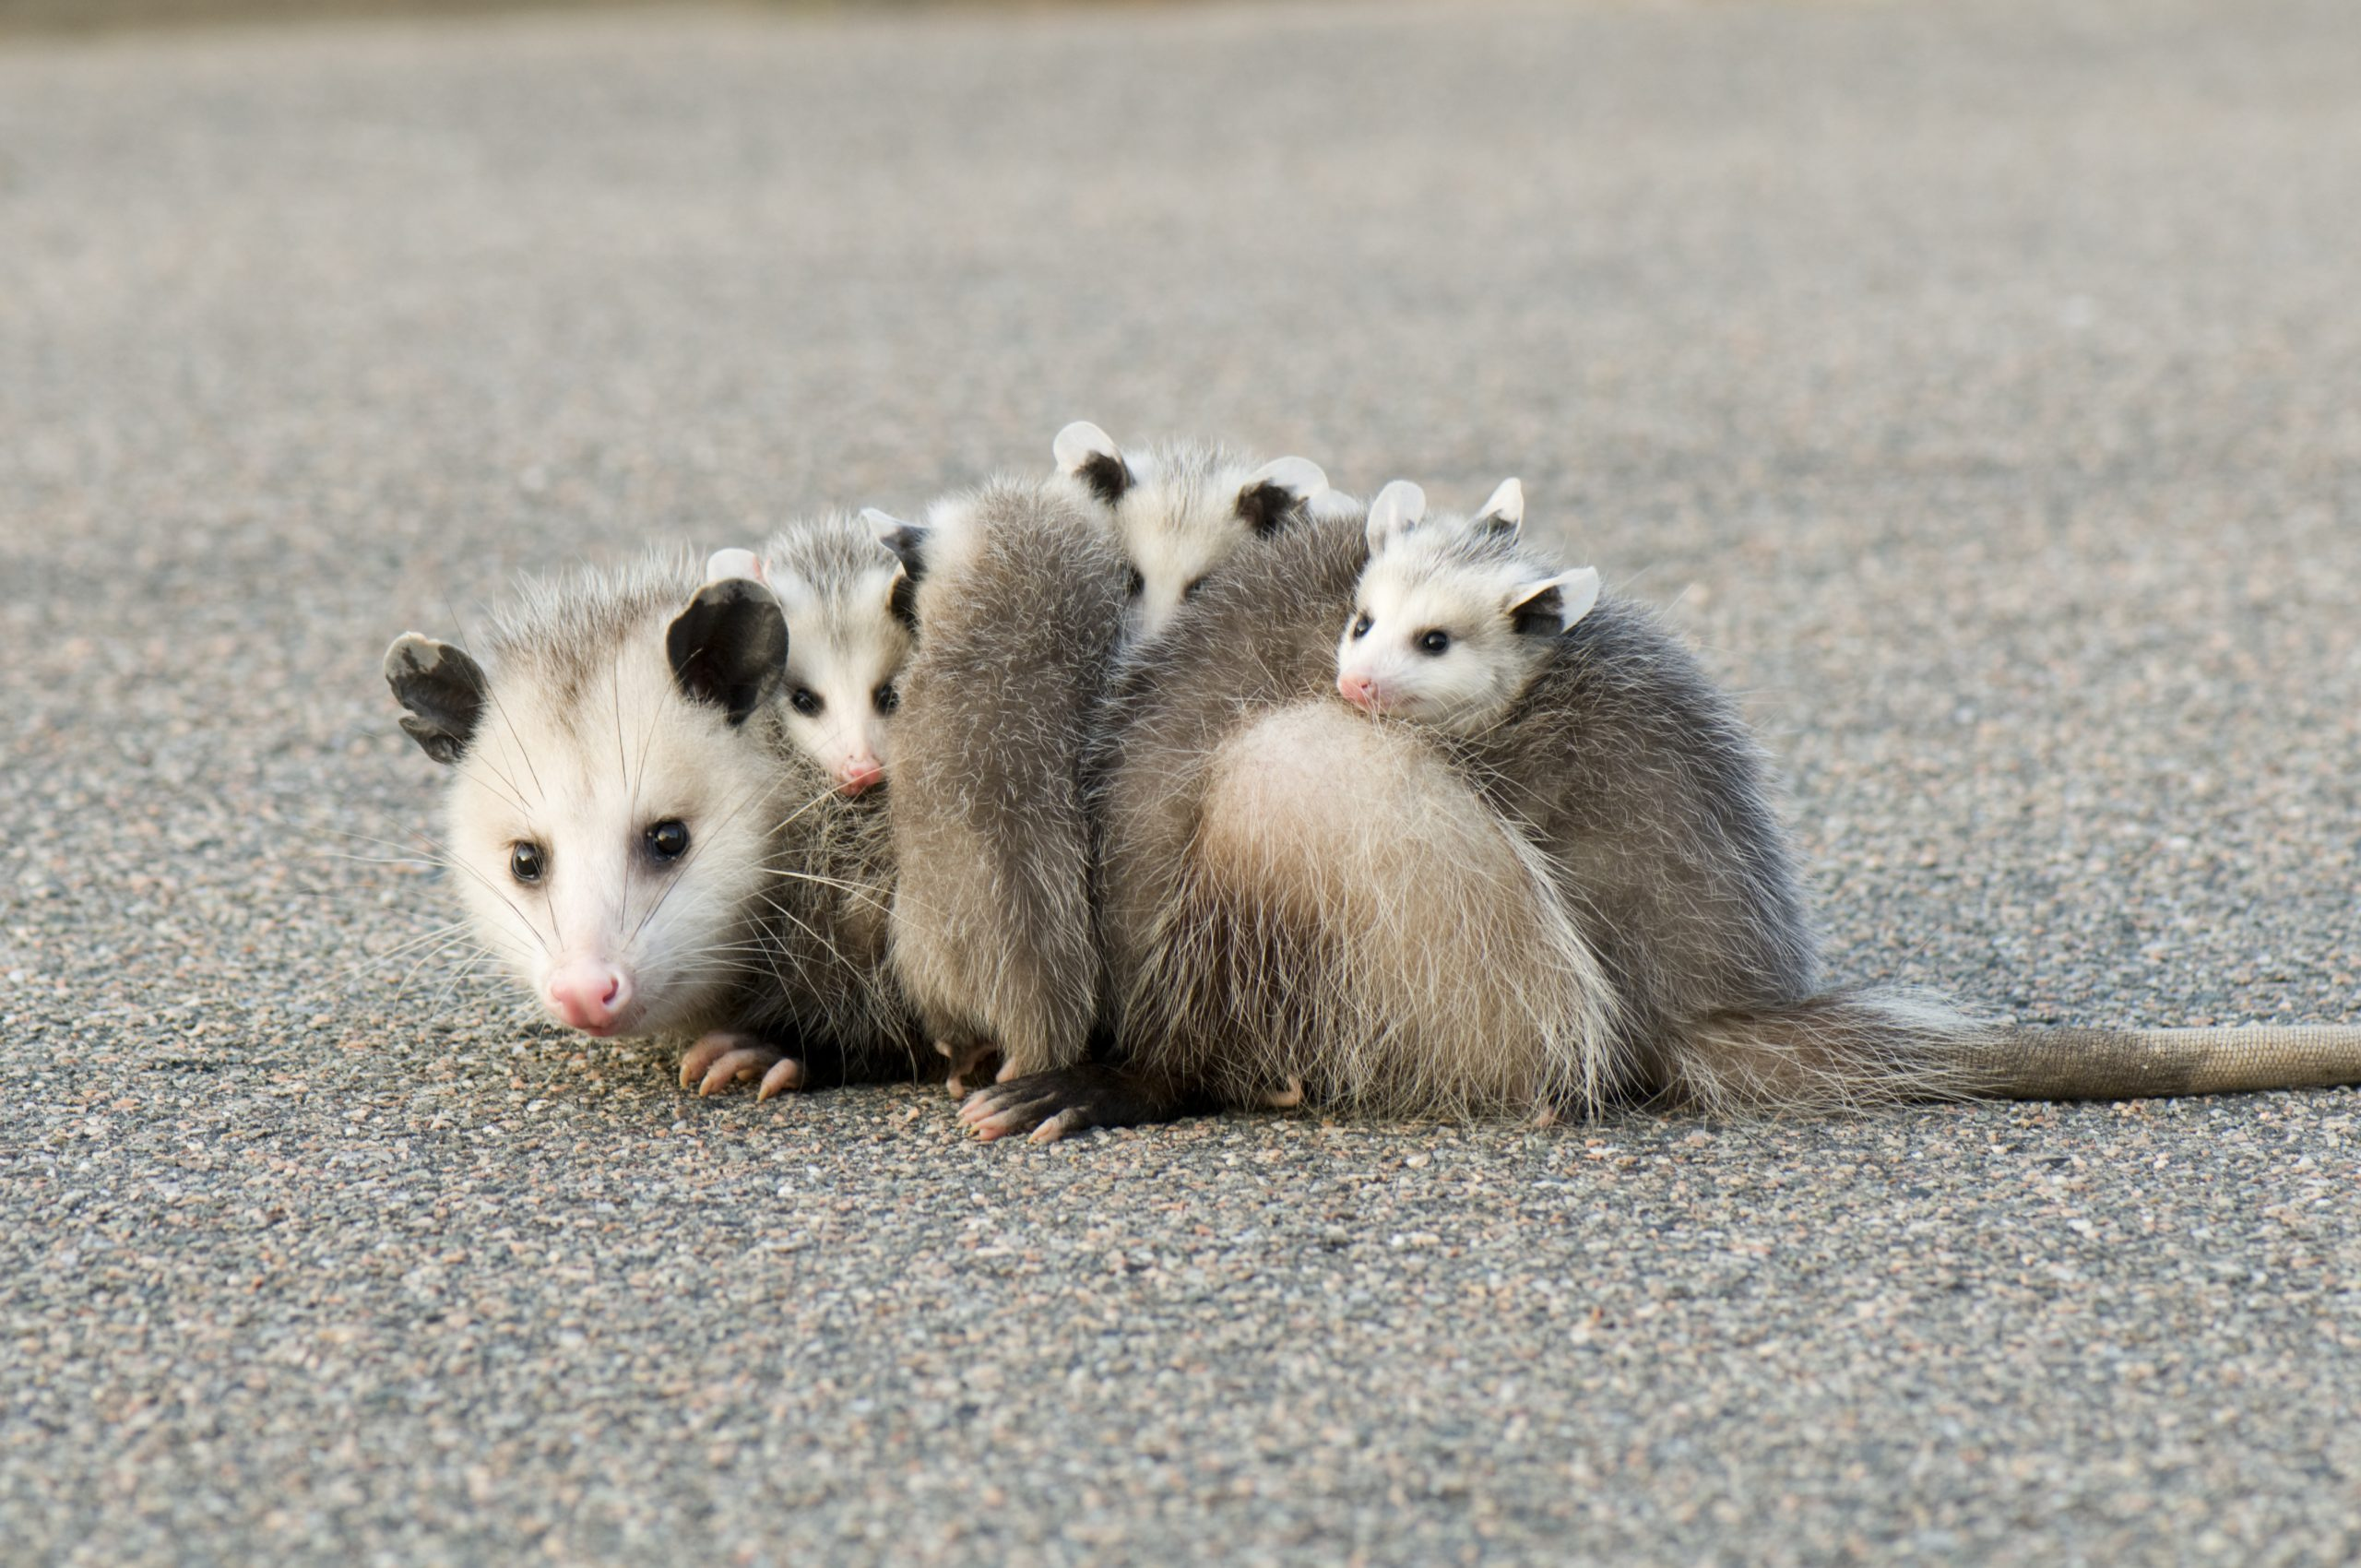 A mother opossum with its four babies on the pavement